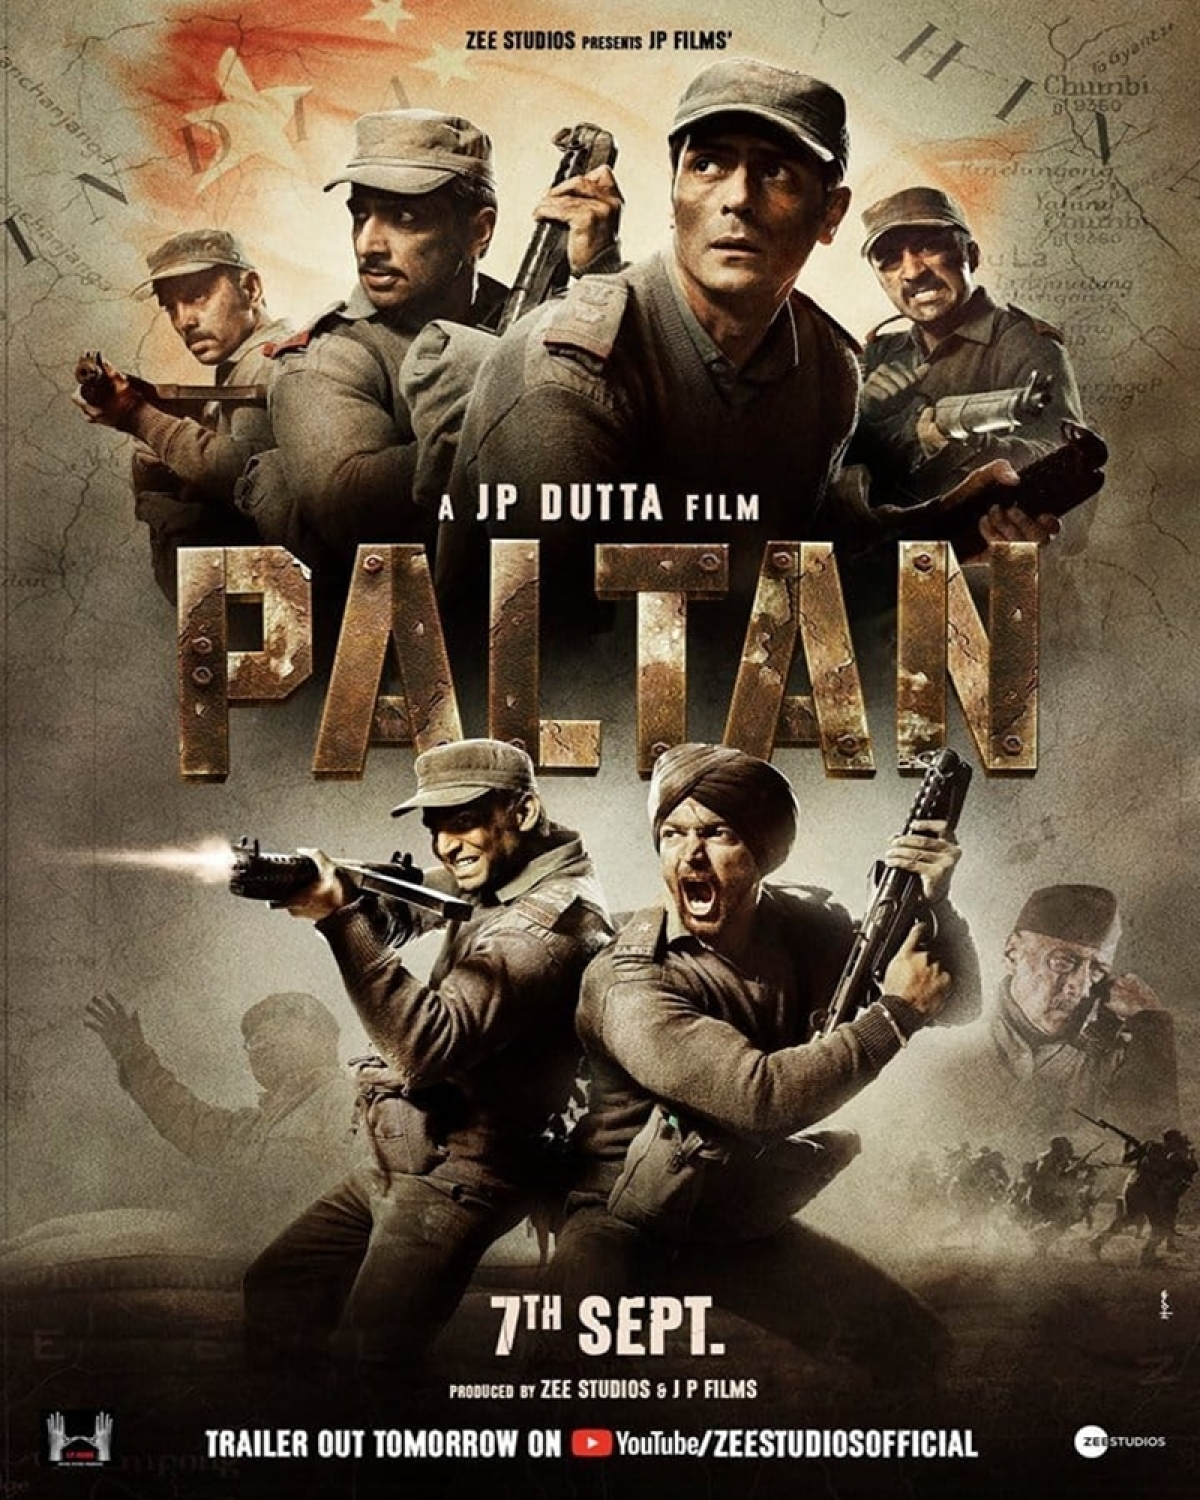 Paltan's new poster introduces J P Dutta's full Indian Army Squad, trailer out tomorrow